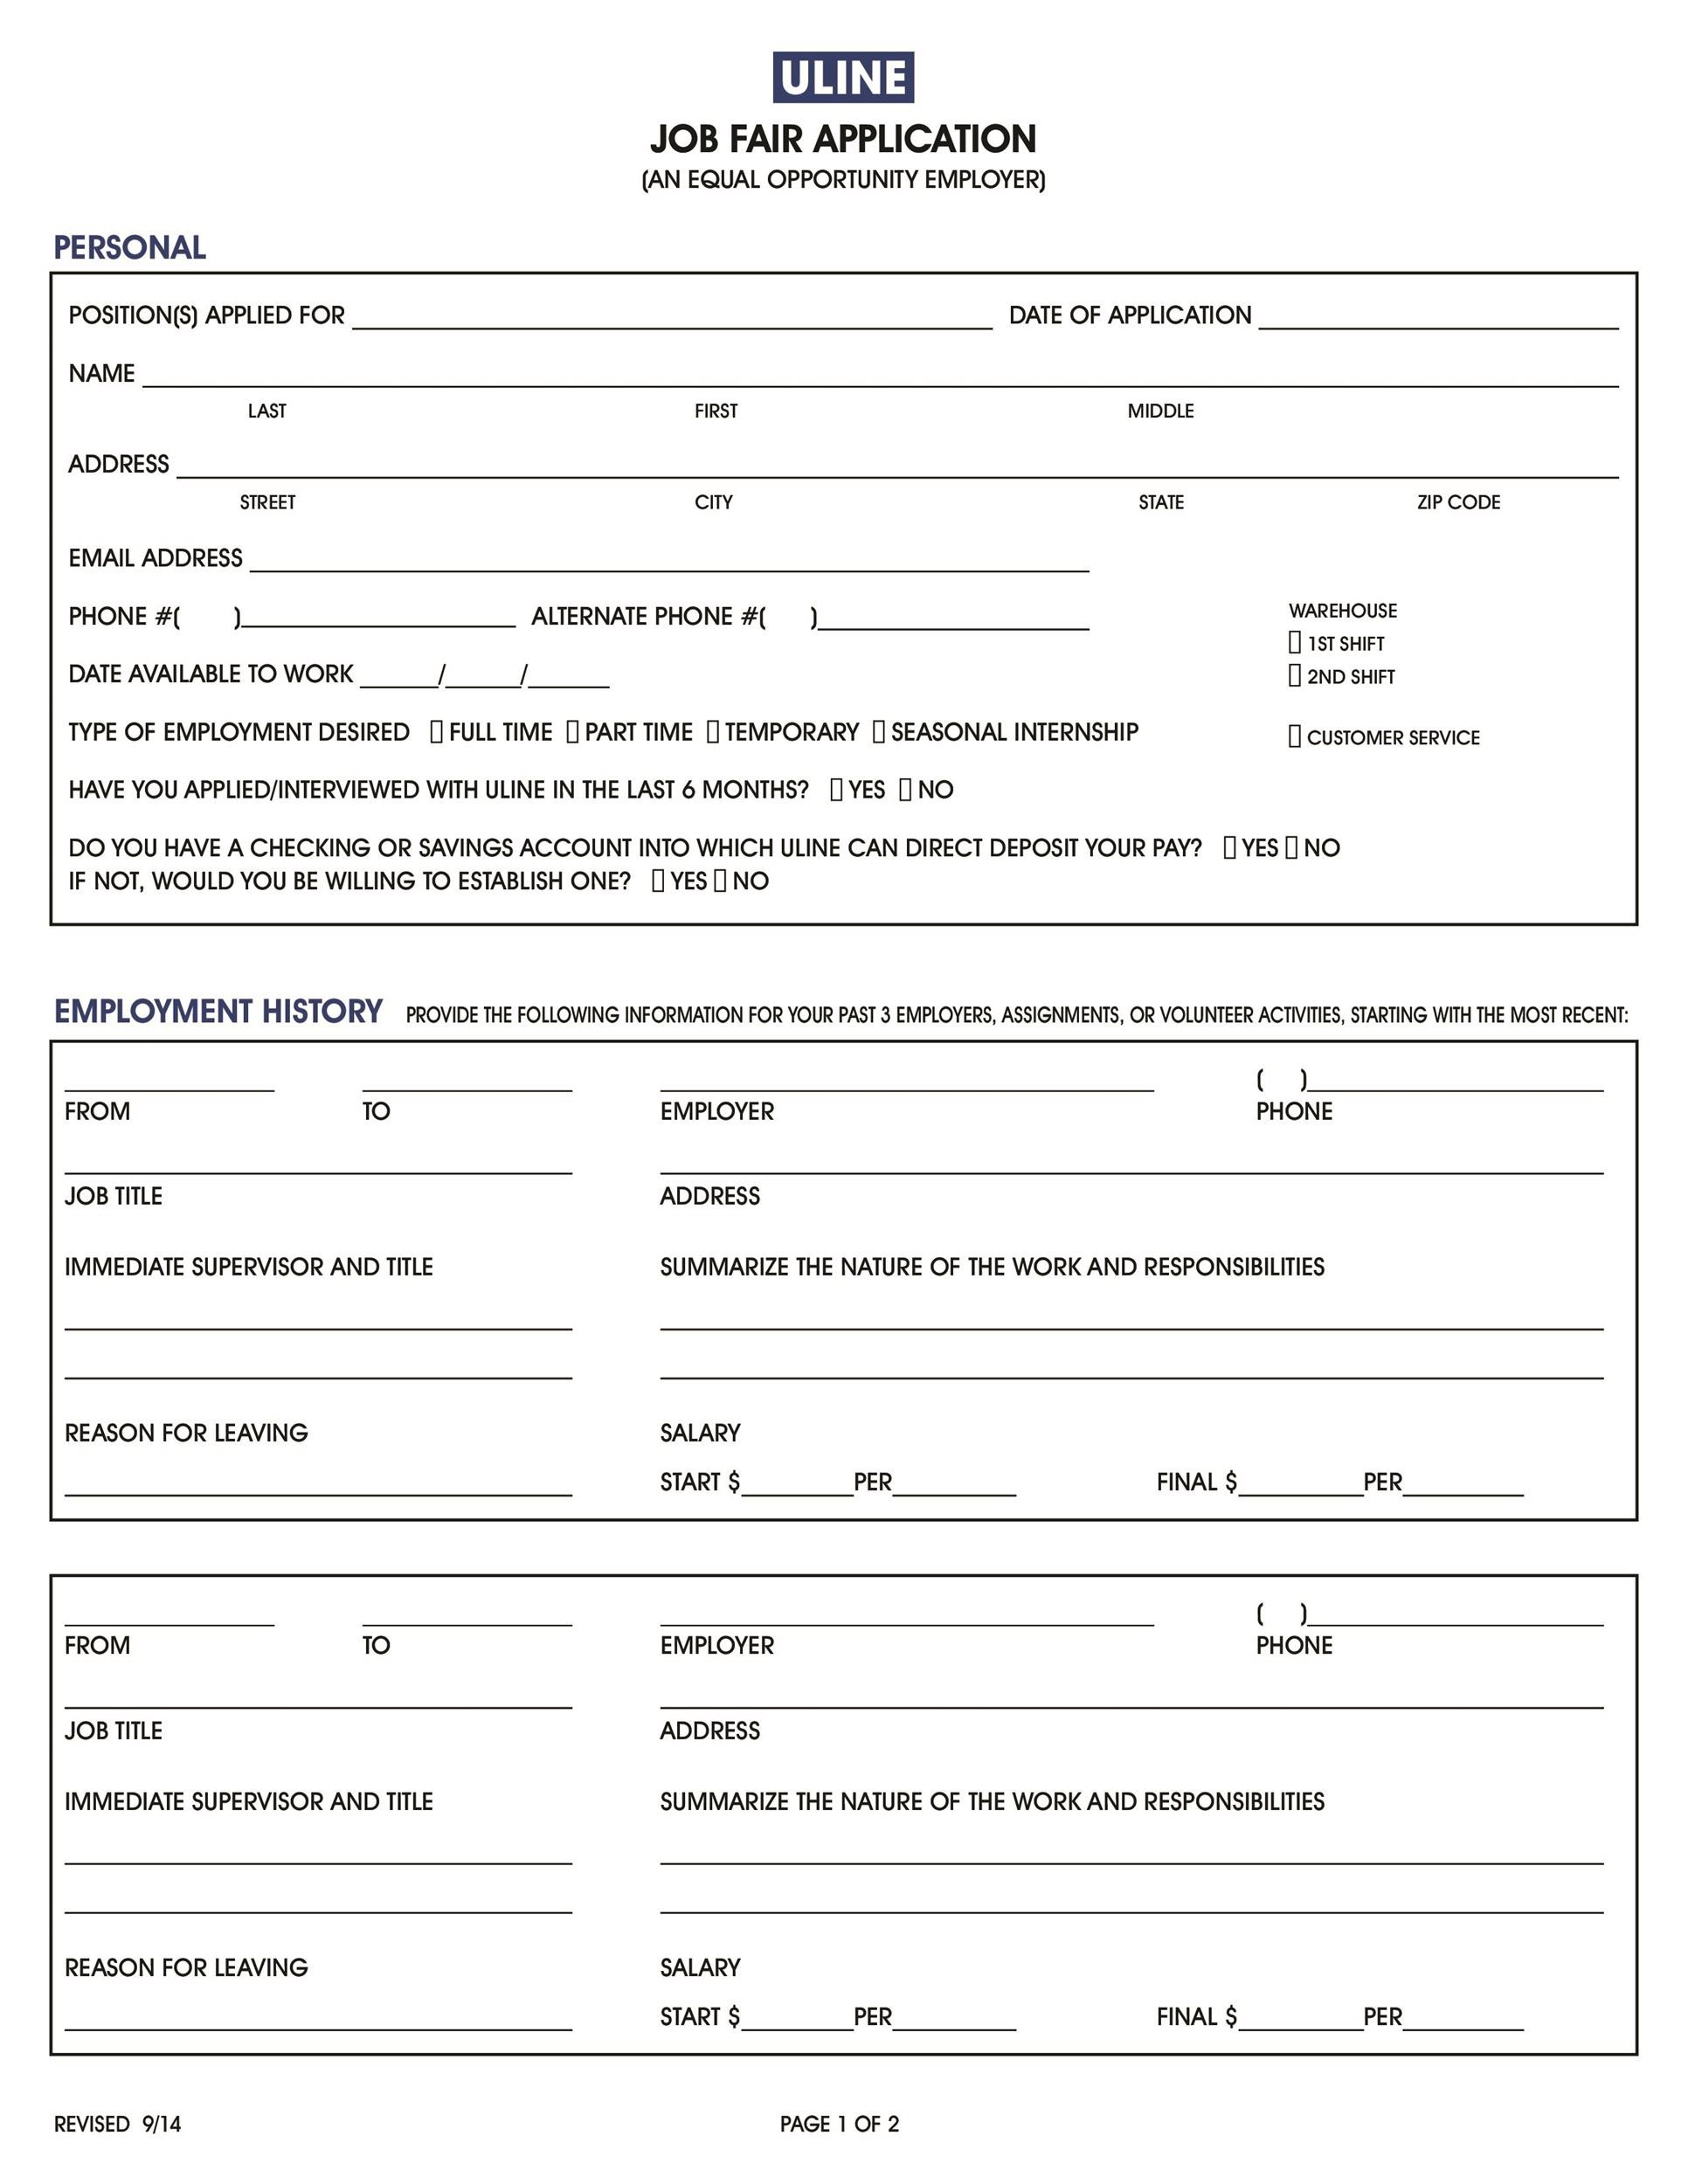 50 Free Employment Job Application Form Templates Printable – Employment History Template